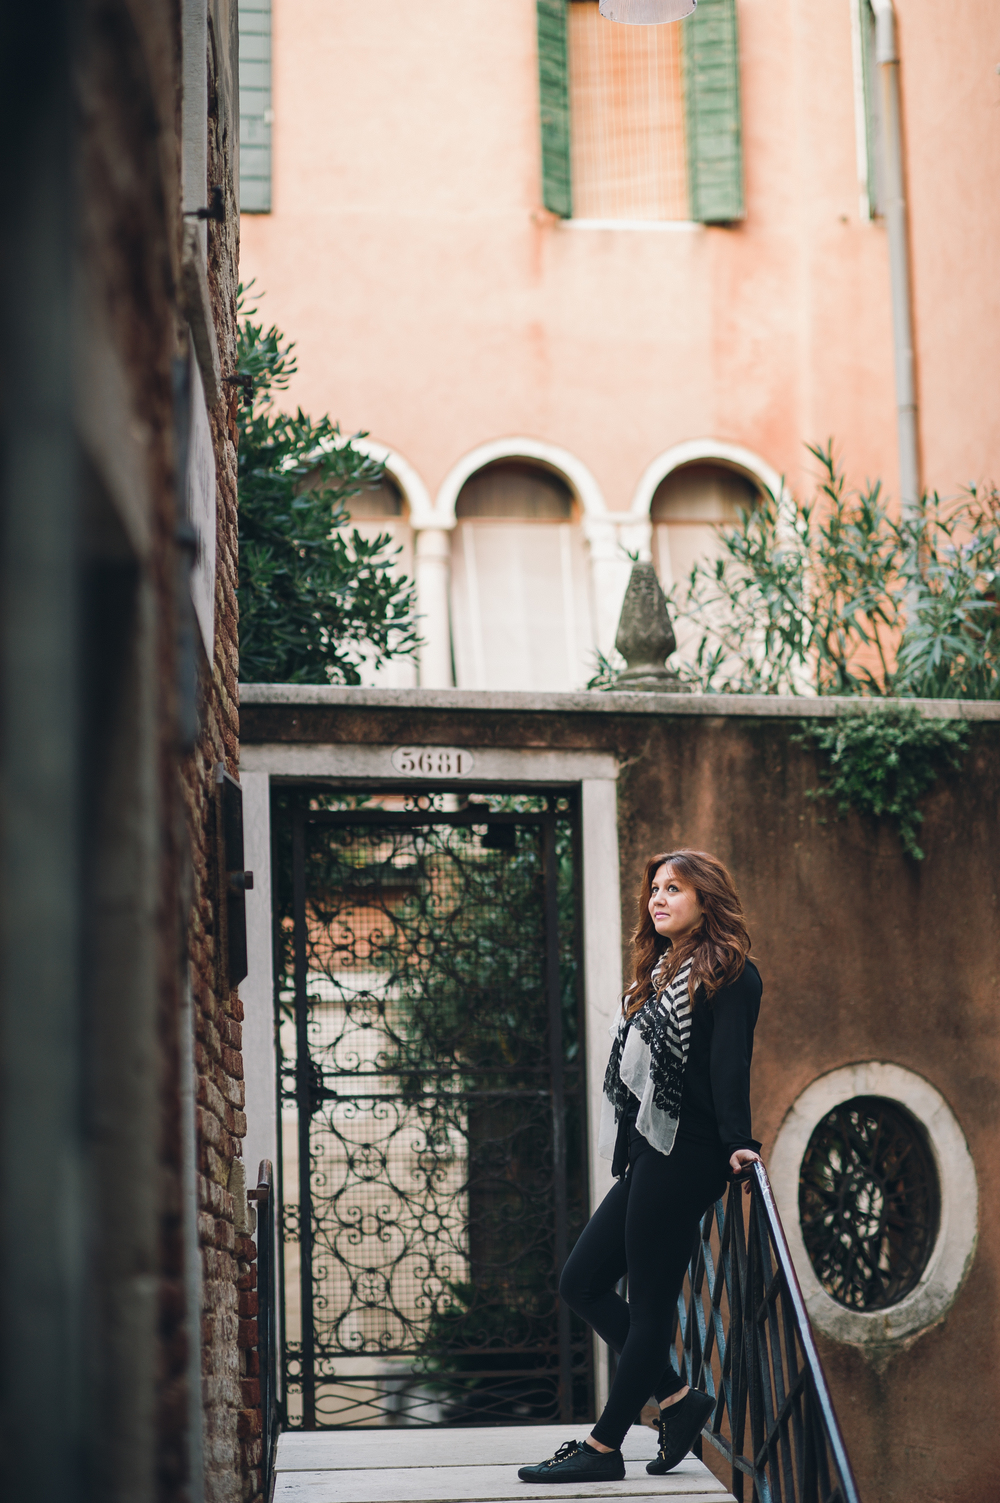 Flytographer | Vacation Photographer in Venice - Serena 3